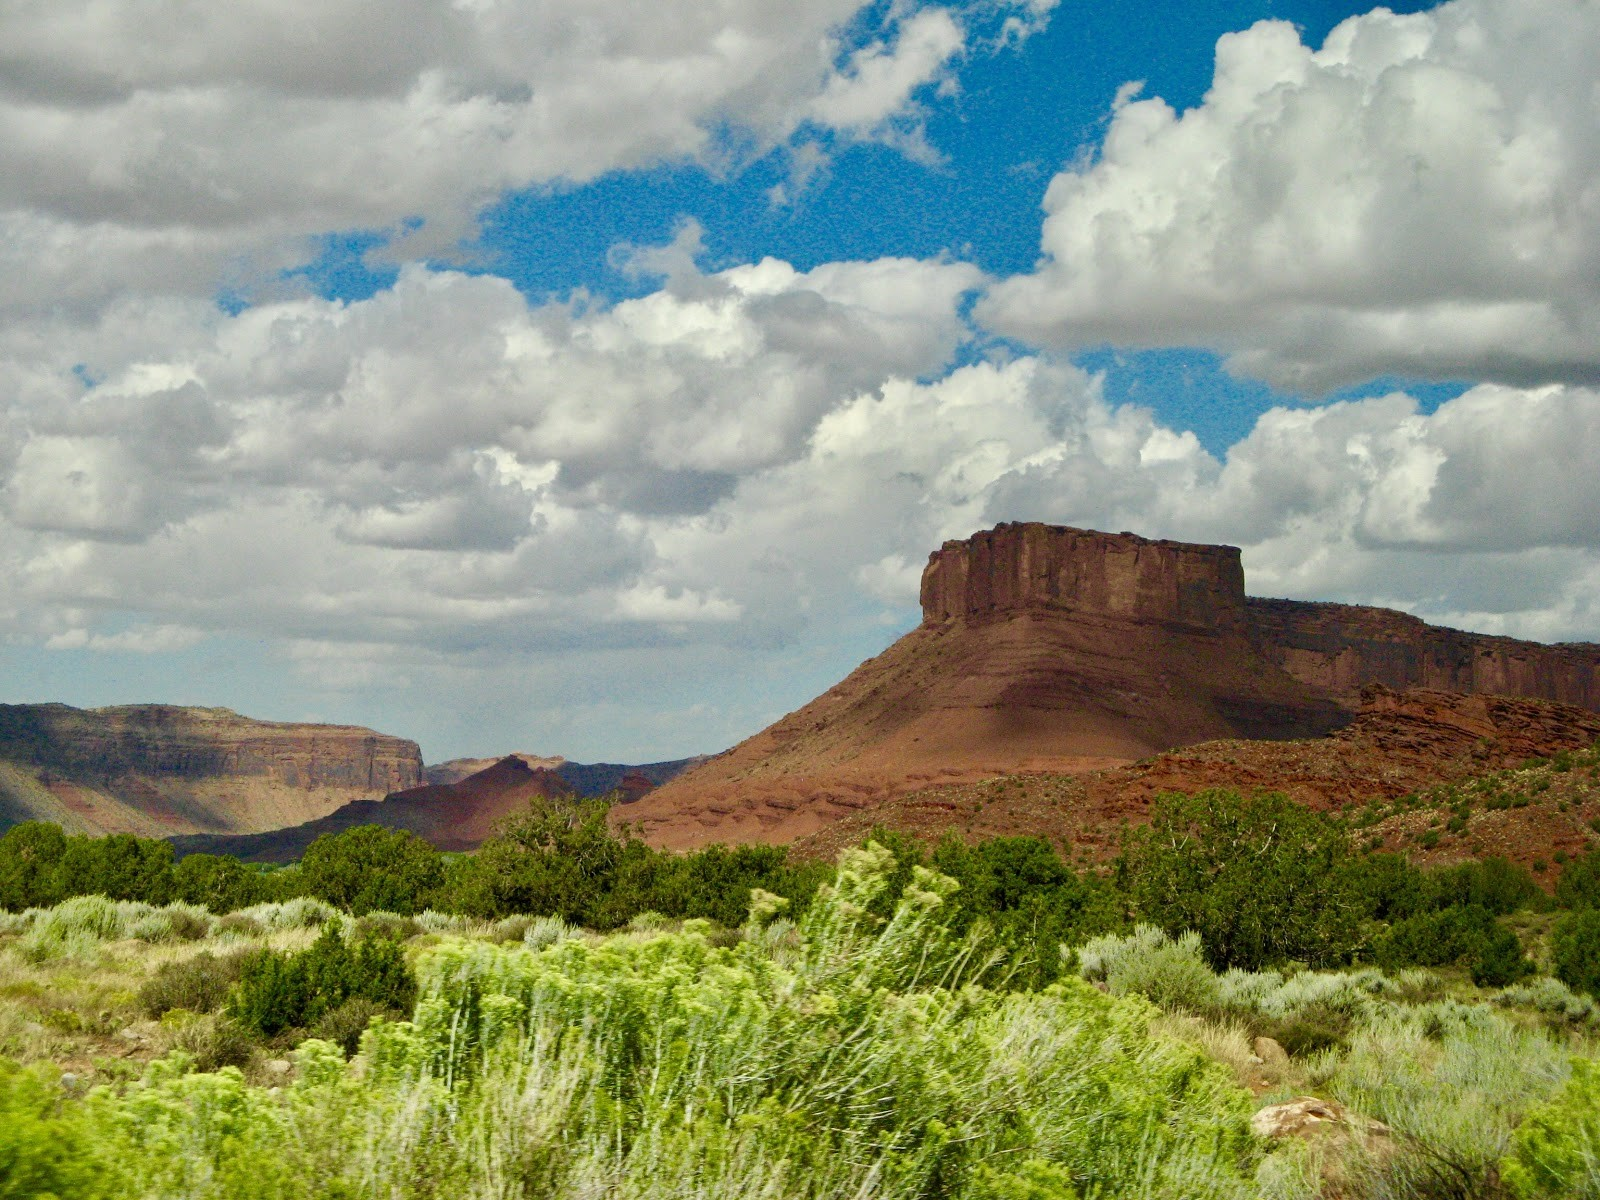 The Moab area offers a variety of scenic landscapes that draw many visitors each year. Photo credit: Aubin Douglas.